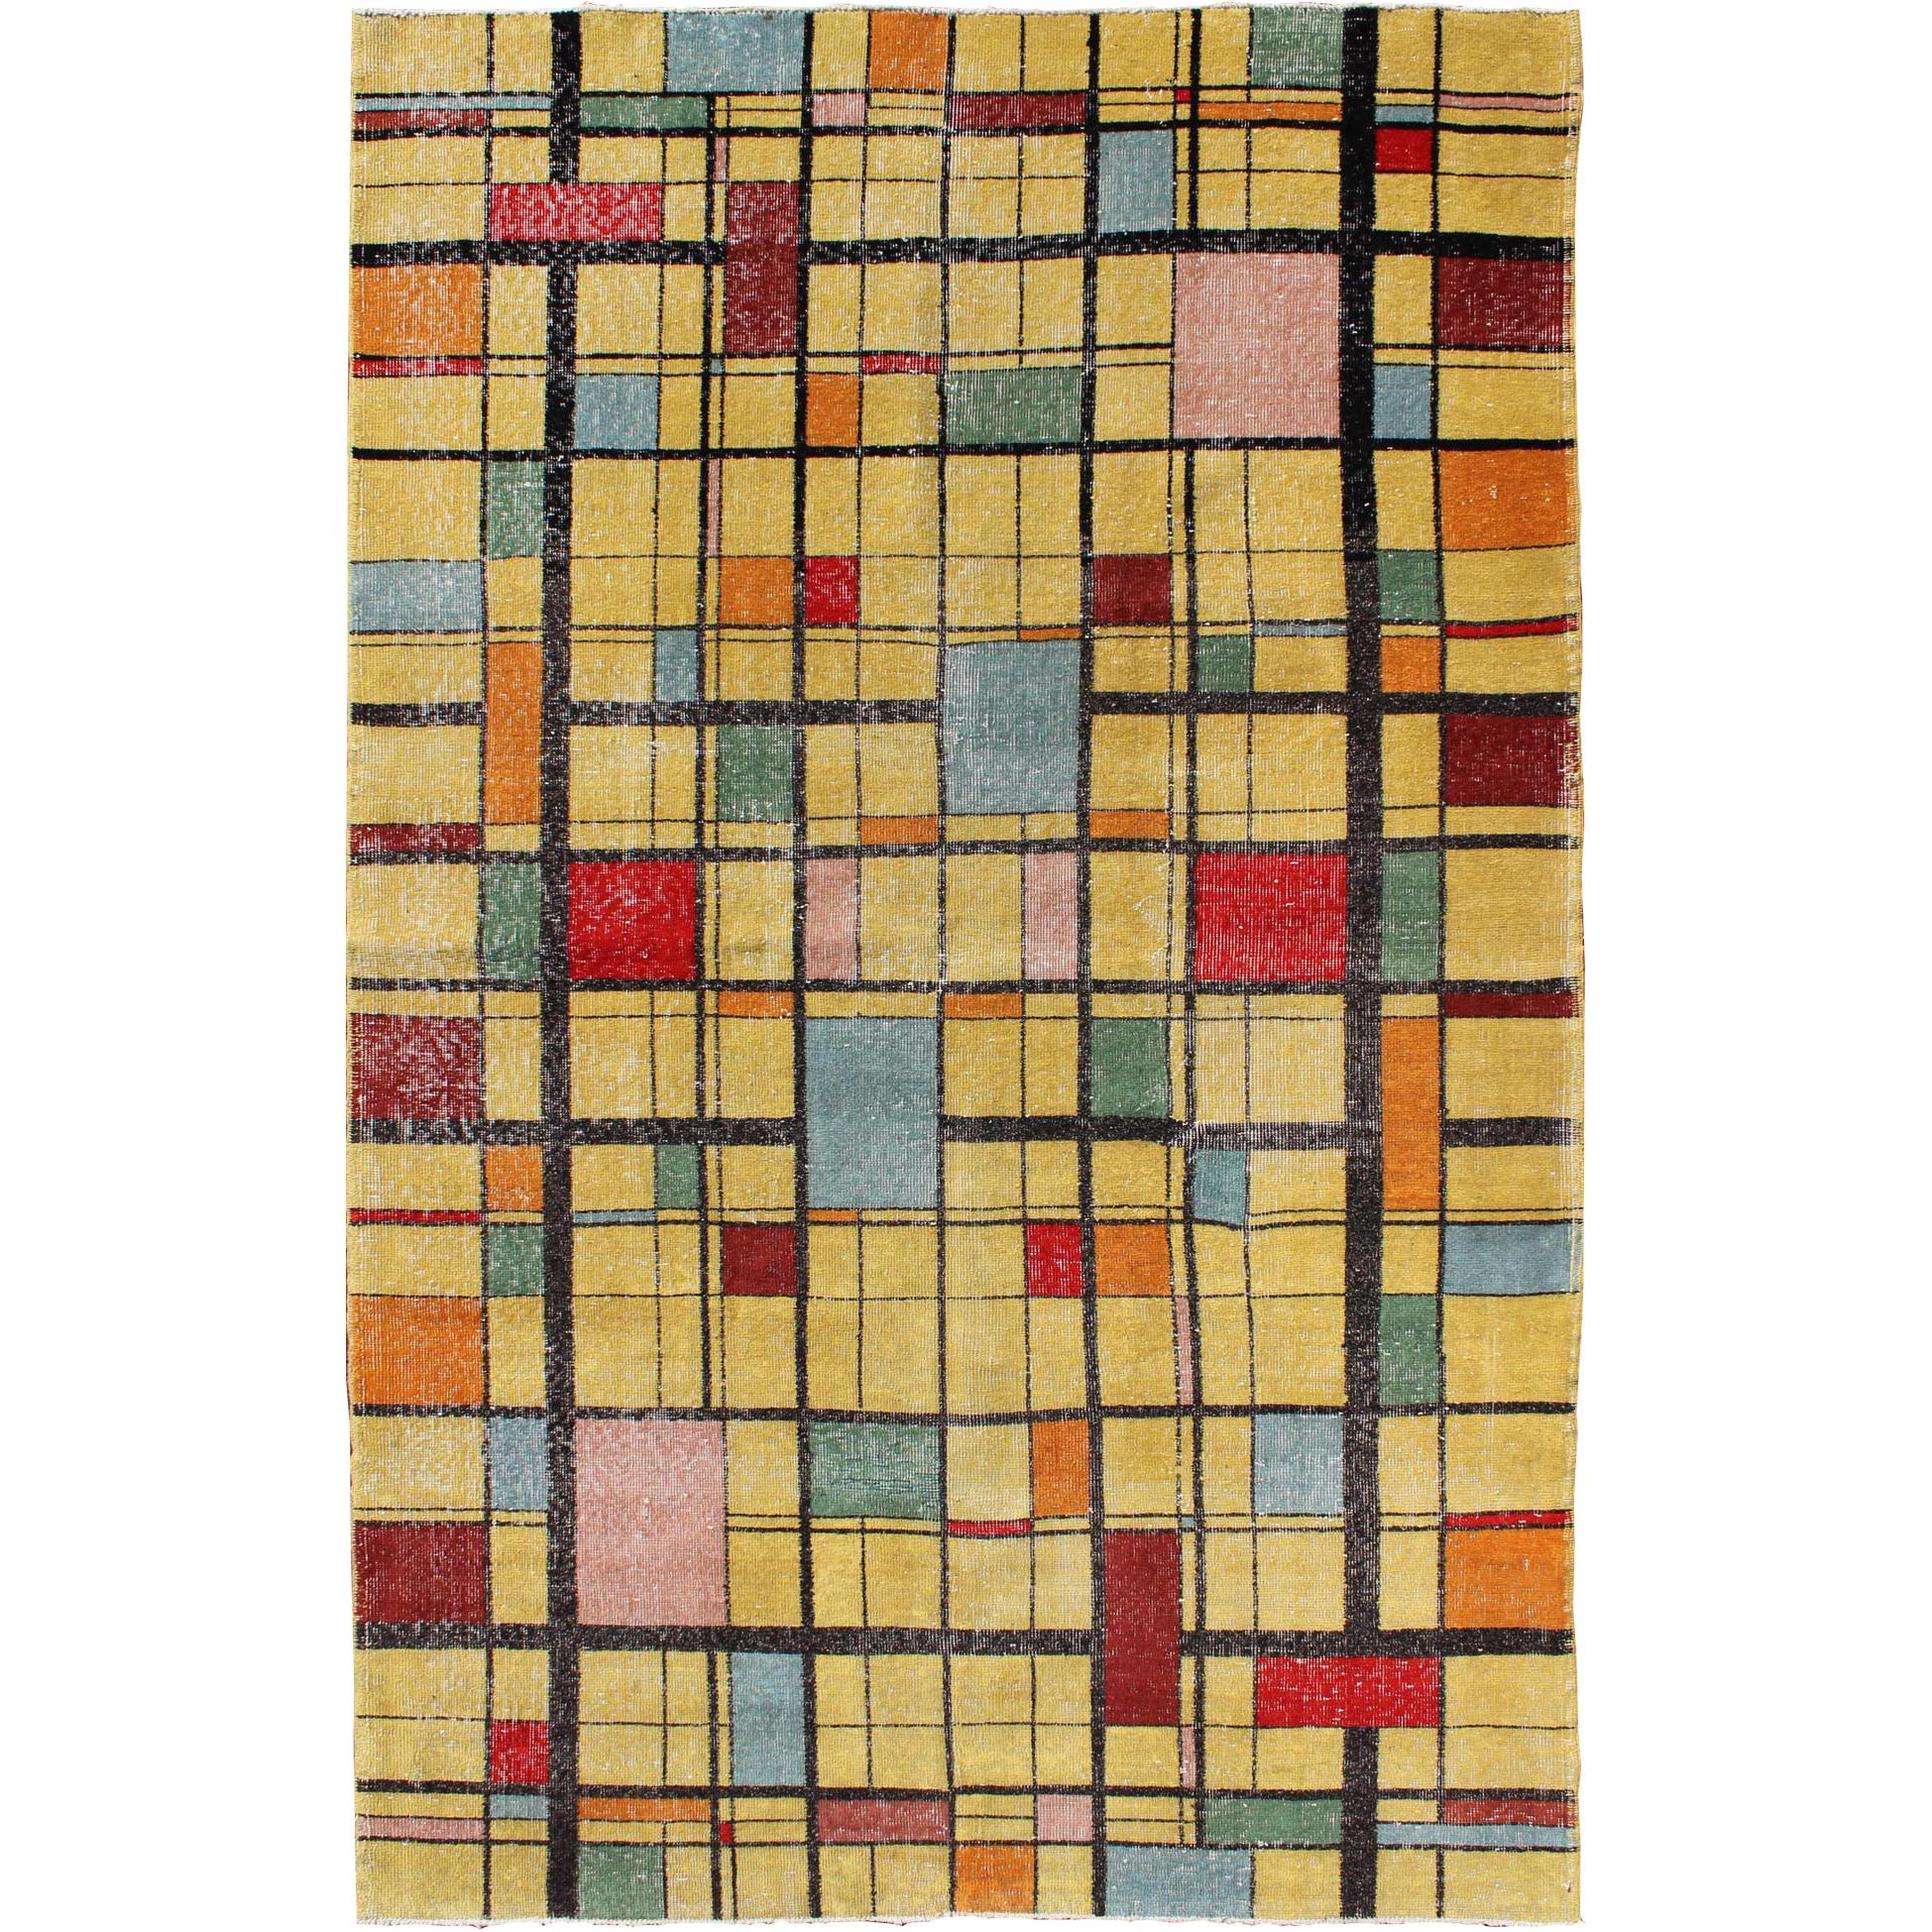 Mid-Century Modern Design Turkish Rug, Vintage Modern Carpet in Bright Yellow